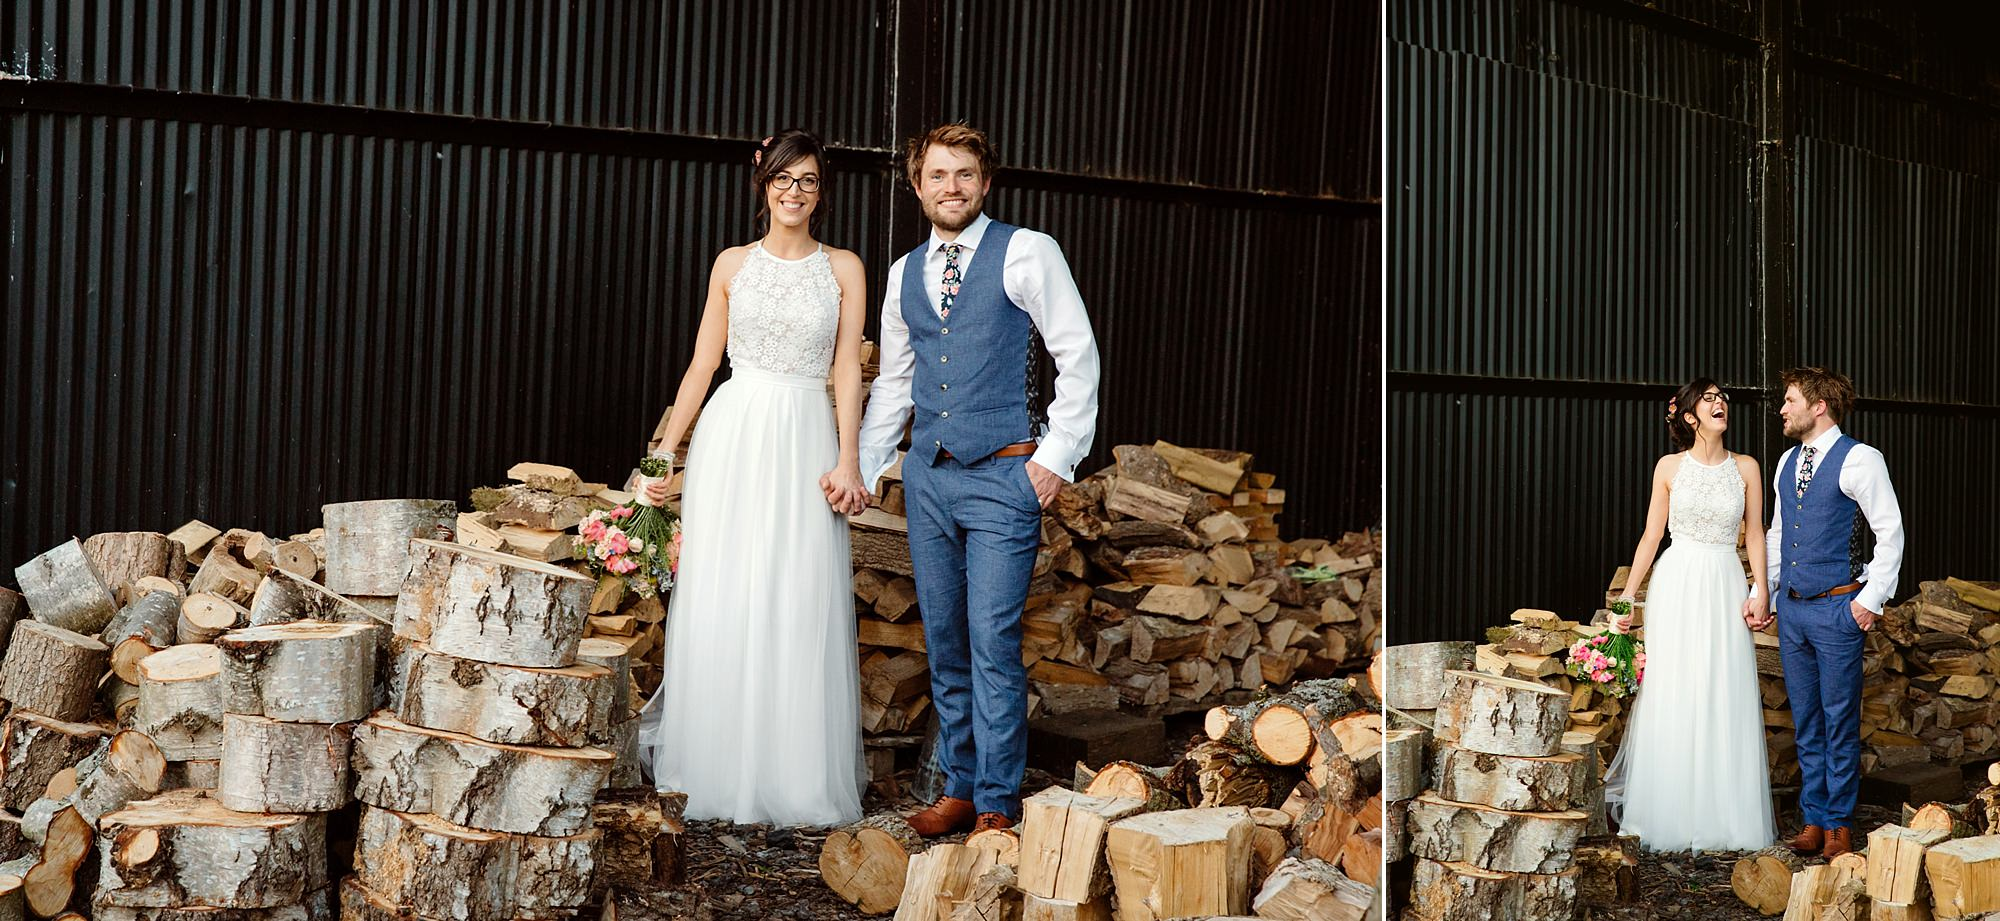 Caswell House Wedding portrait of bride and groom on top of log pile